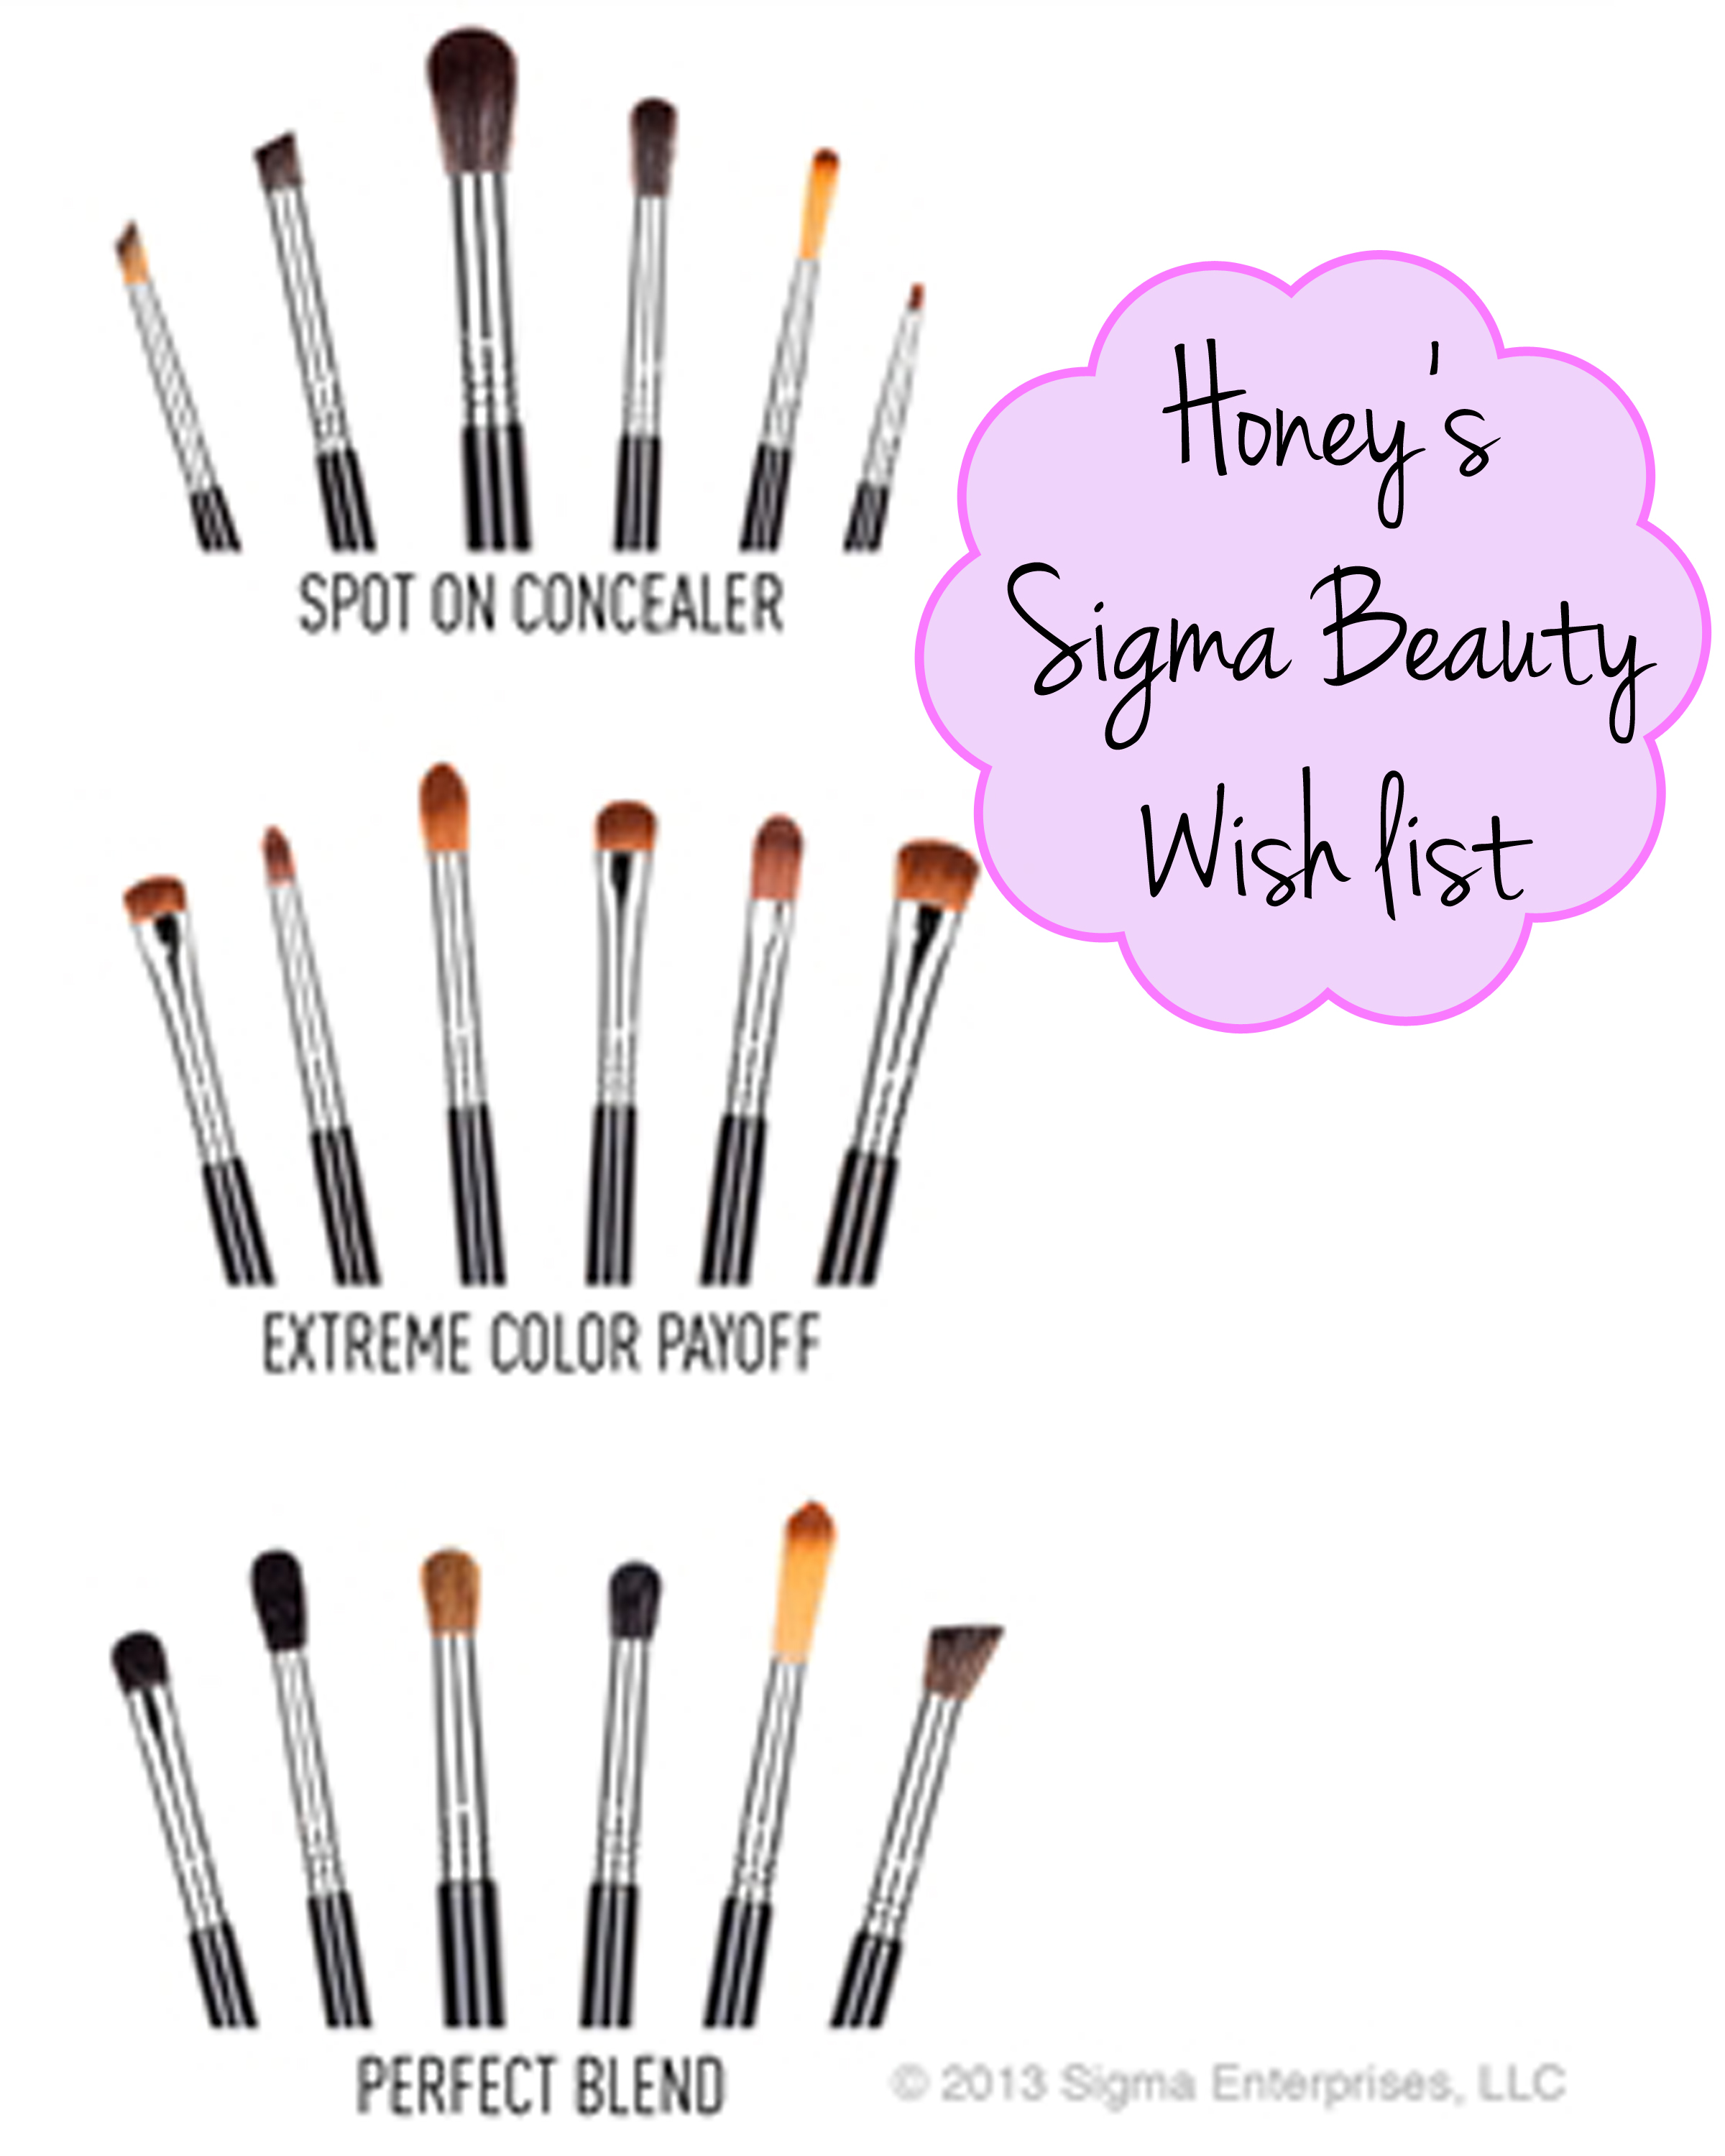 Honey's Sigma Beauty Holiday Gift Guide & Wish list